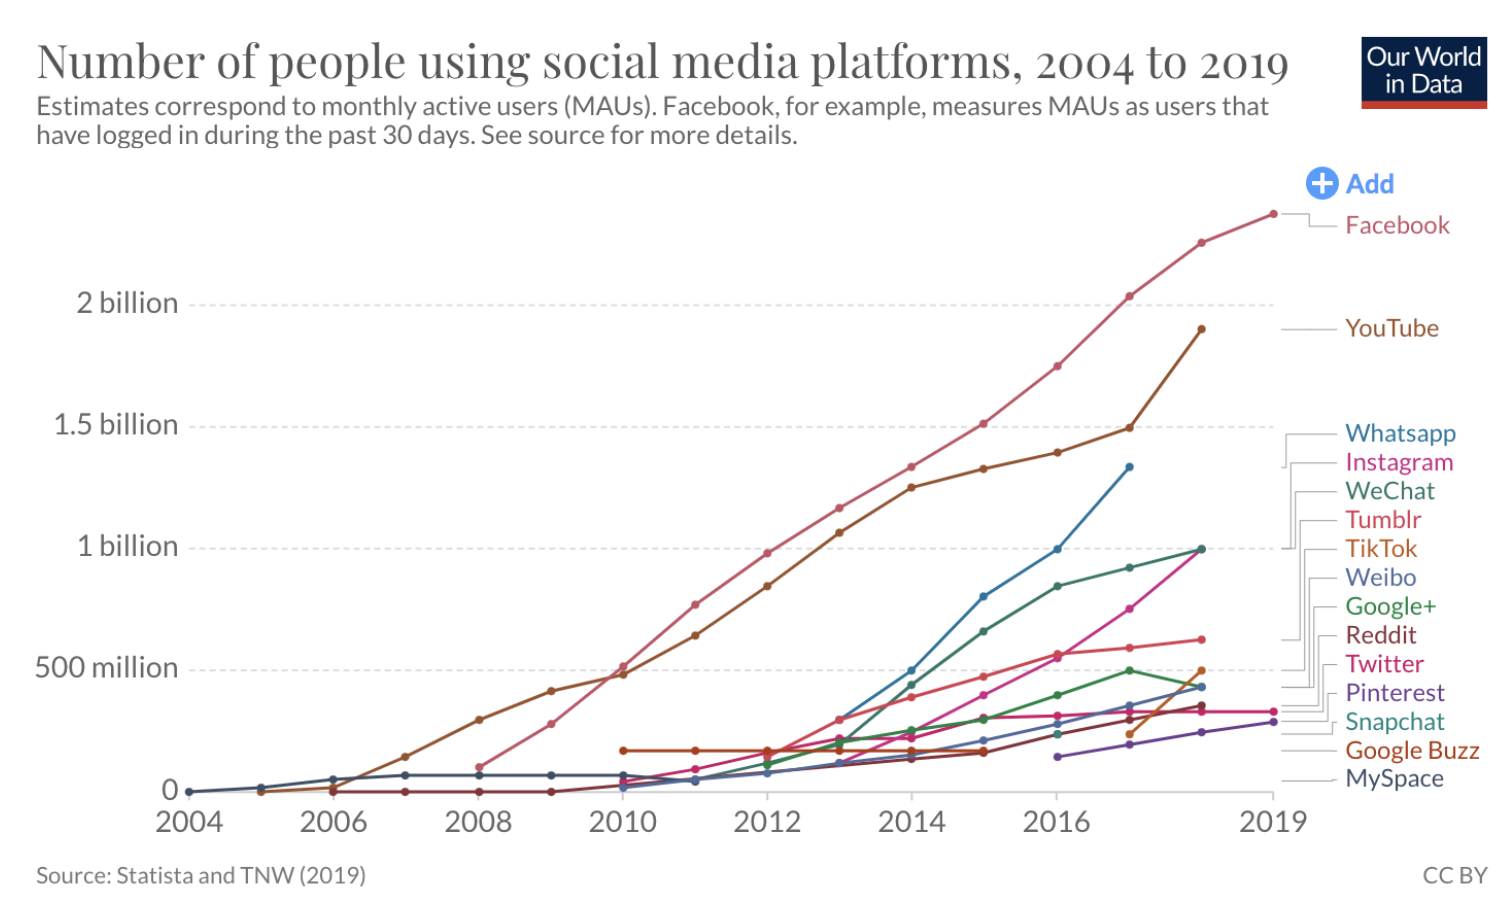 Number of people using social media chart